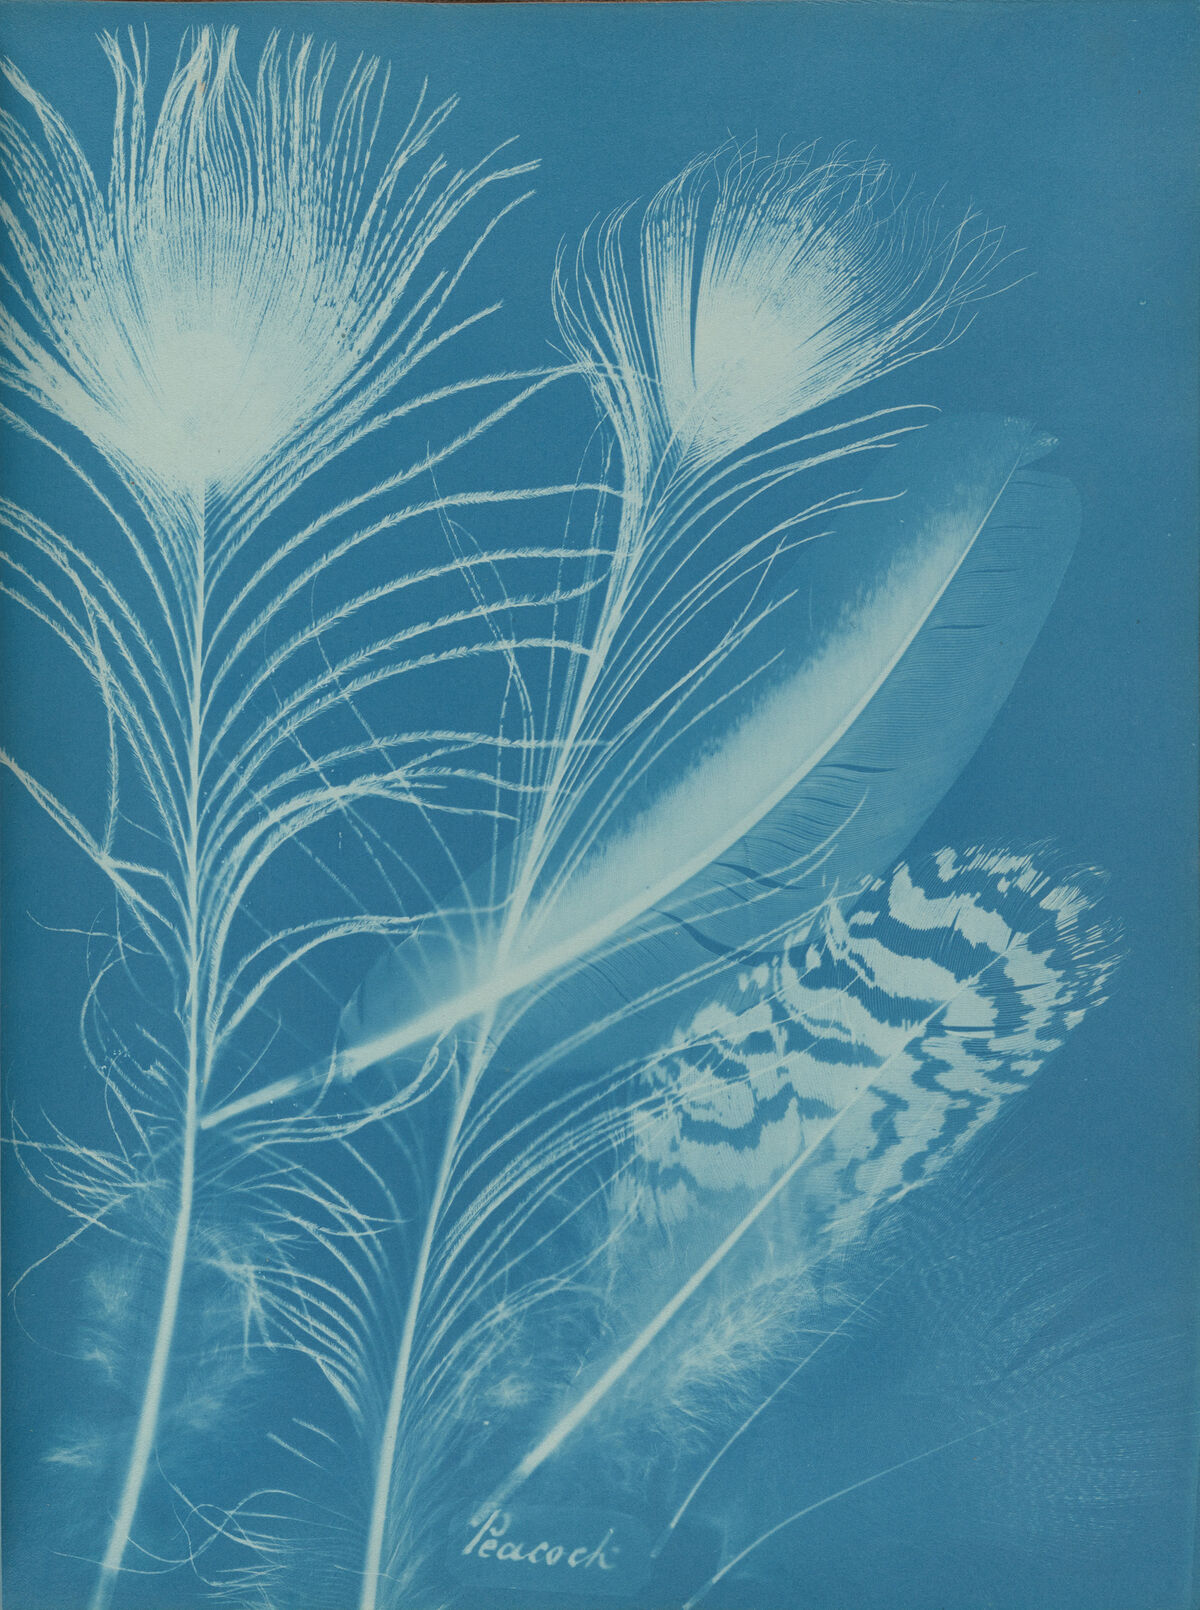 Anna Atkins and Anne Dixon, Peacock, 1861. Private collection. Courtesy of Hans P. Kraus, Jr.